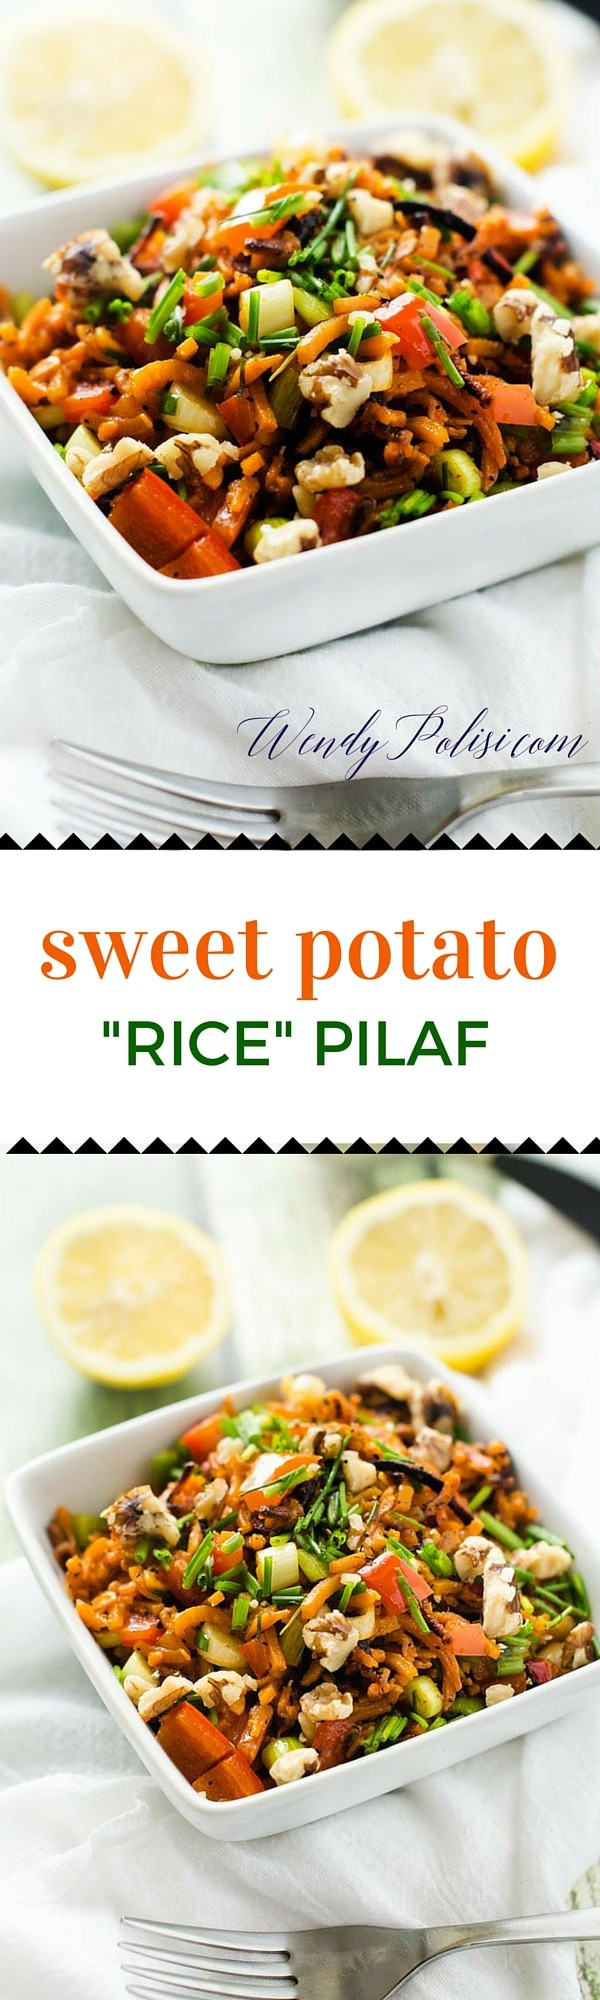 Sweet Potato Rice Pilaf This Sweet Potato Rice Pilaf is easy to make, delicious and packed with nutrition.  With sweet potatoes, red pepper, shallots, and chives you can't go wrong! #thereciperedux